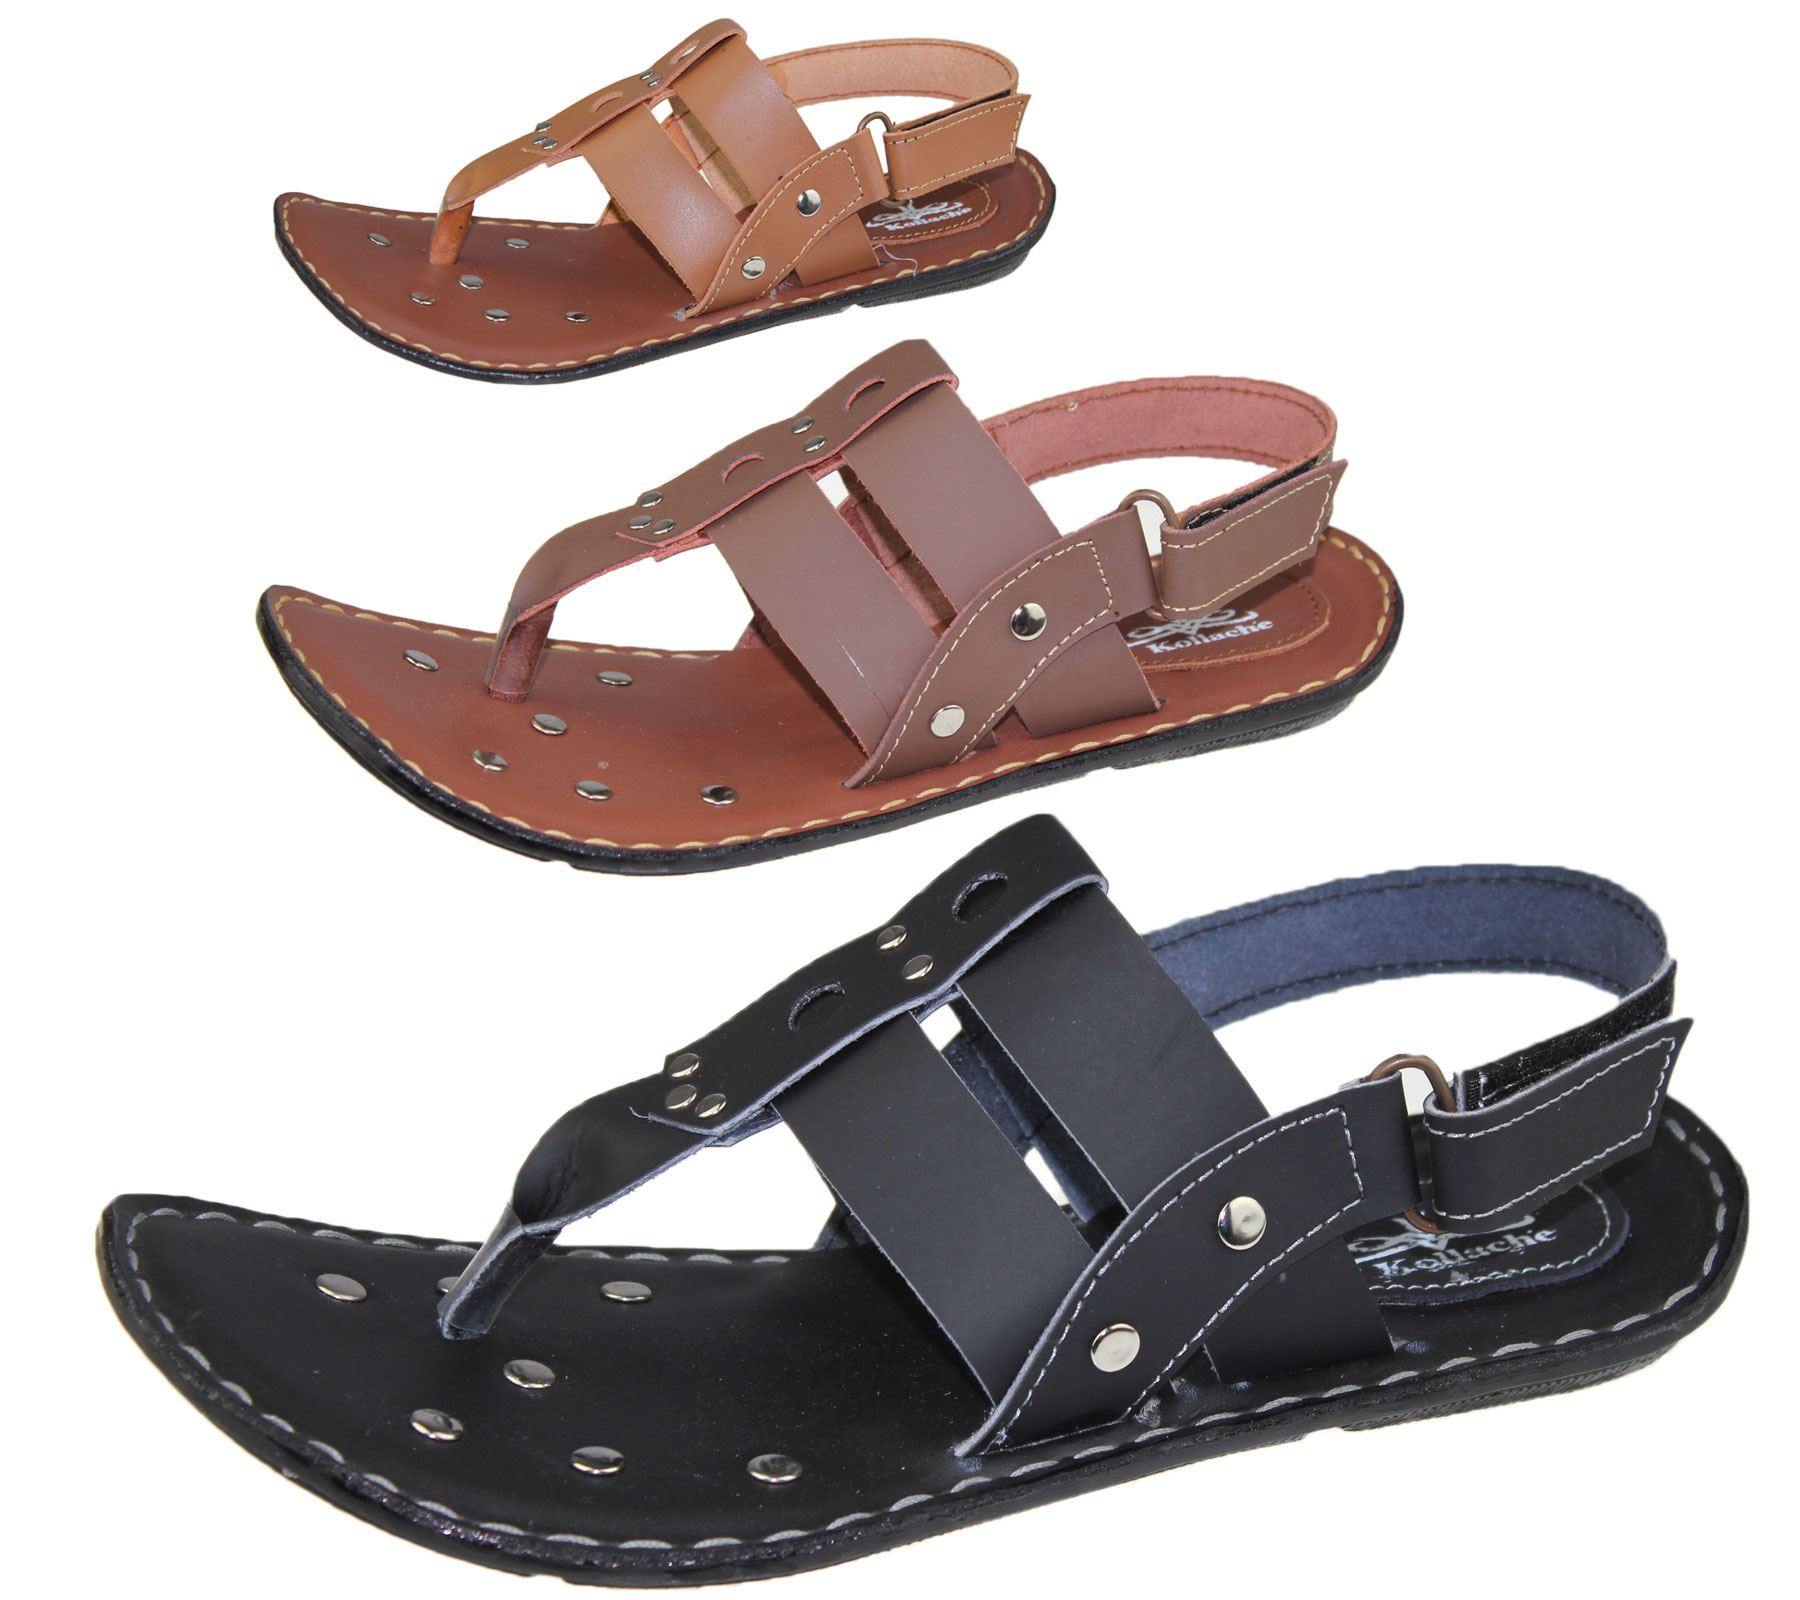 7517a9f54 Fastening  Velcro Material  Synthetic From Kollache come these fabulous  studded display sandals to add a glamorous sparkle to your summer shoe  collection.